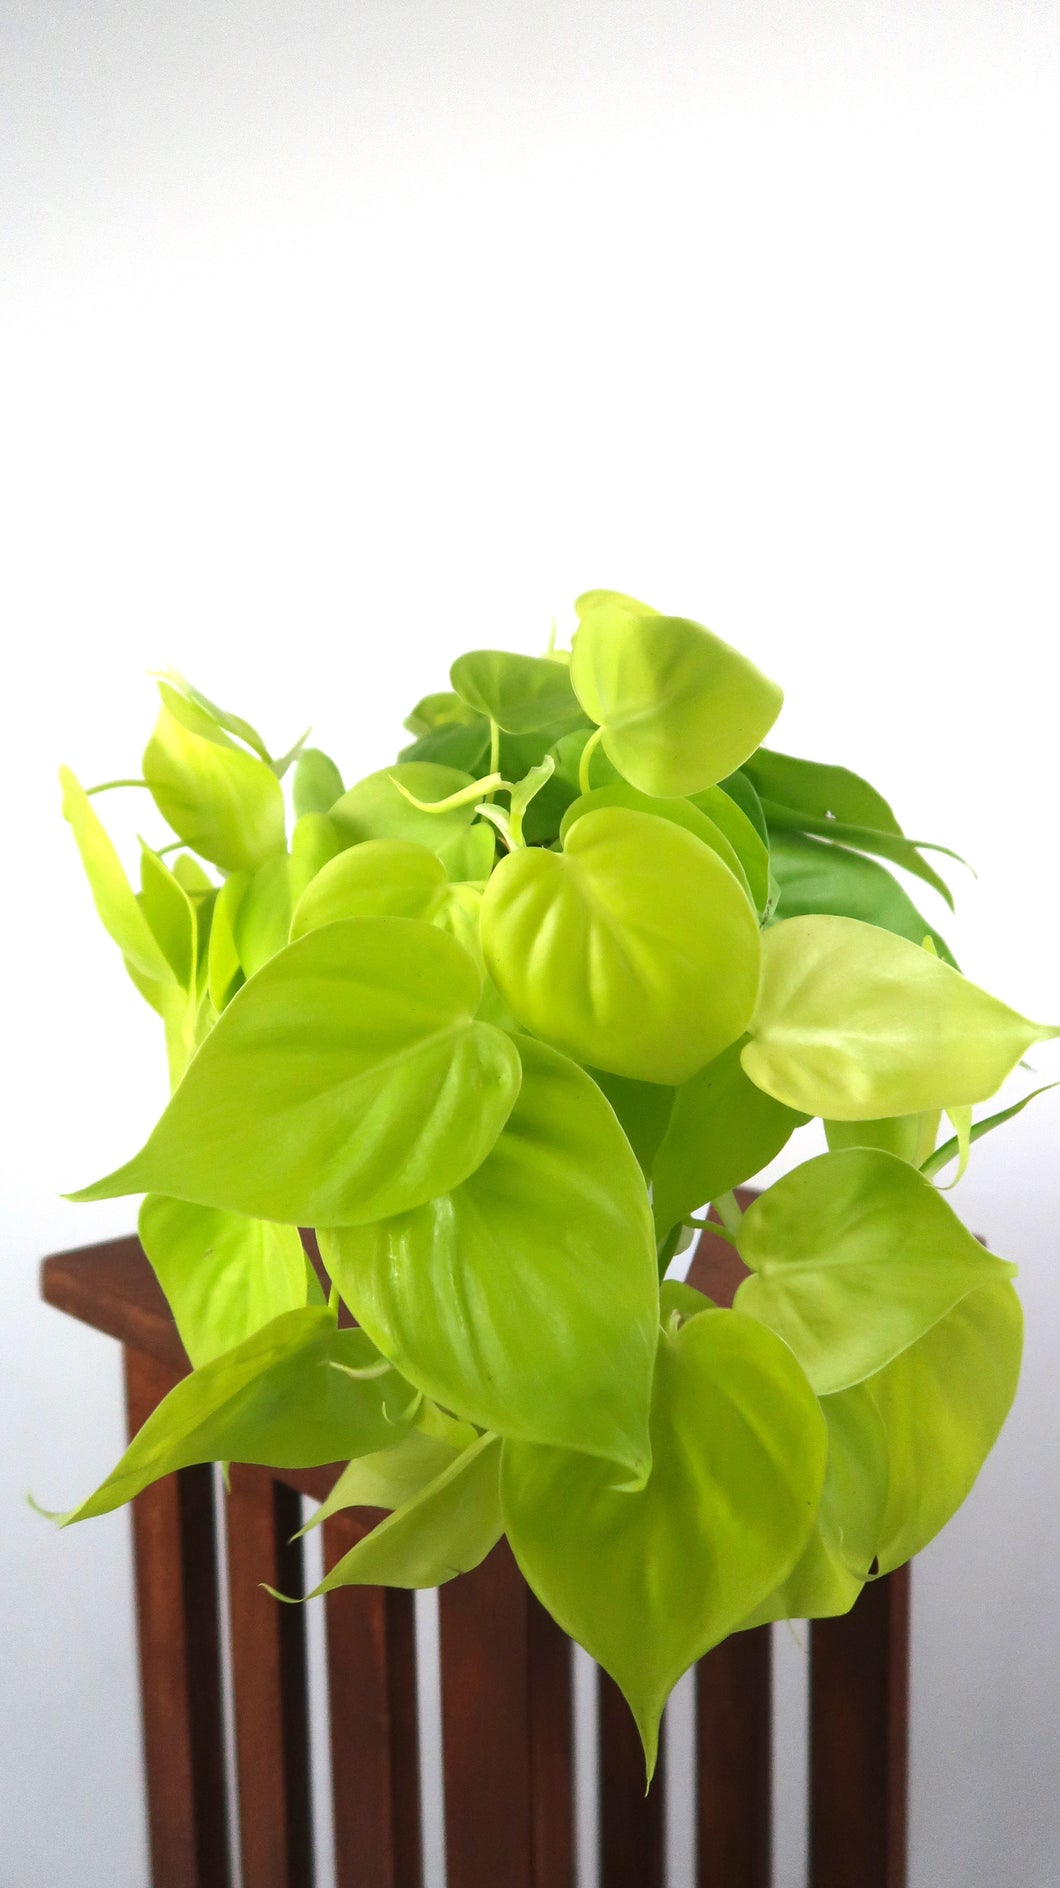 Large Neon Philodendron Air Purifying Indoor Plant- Live Houseplant Plant - Pretty in Green Plants